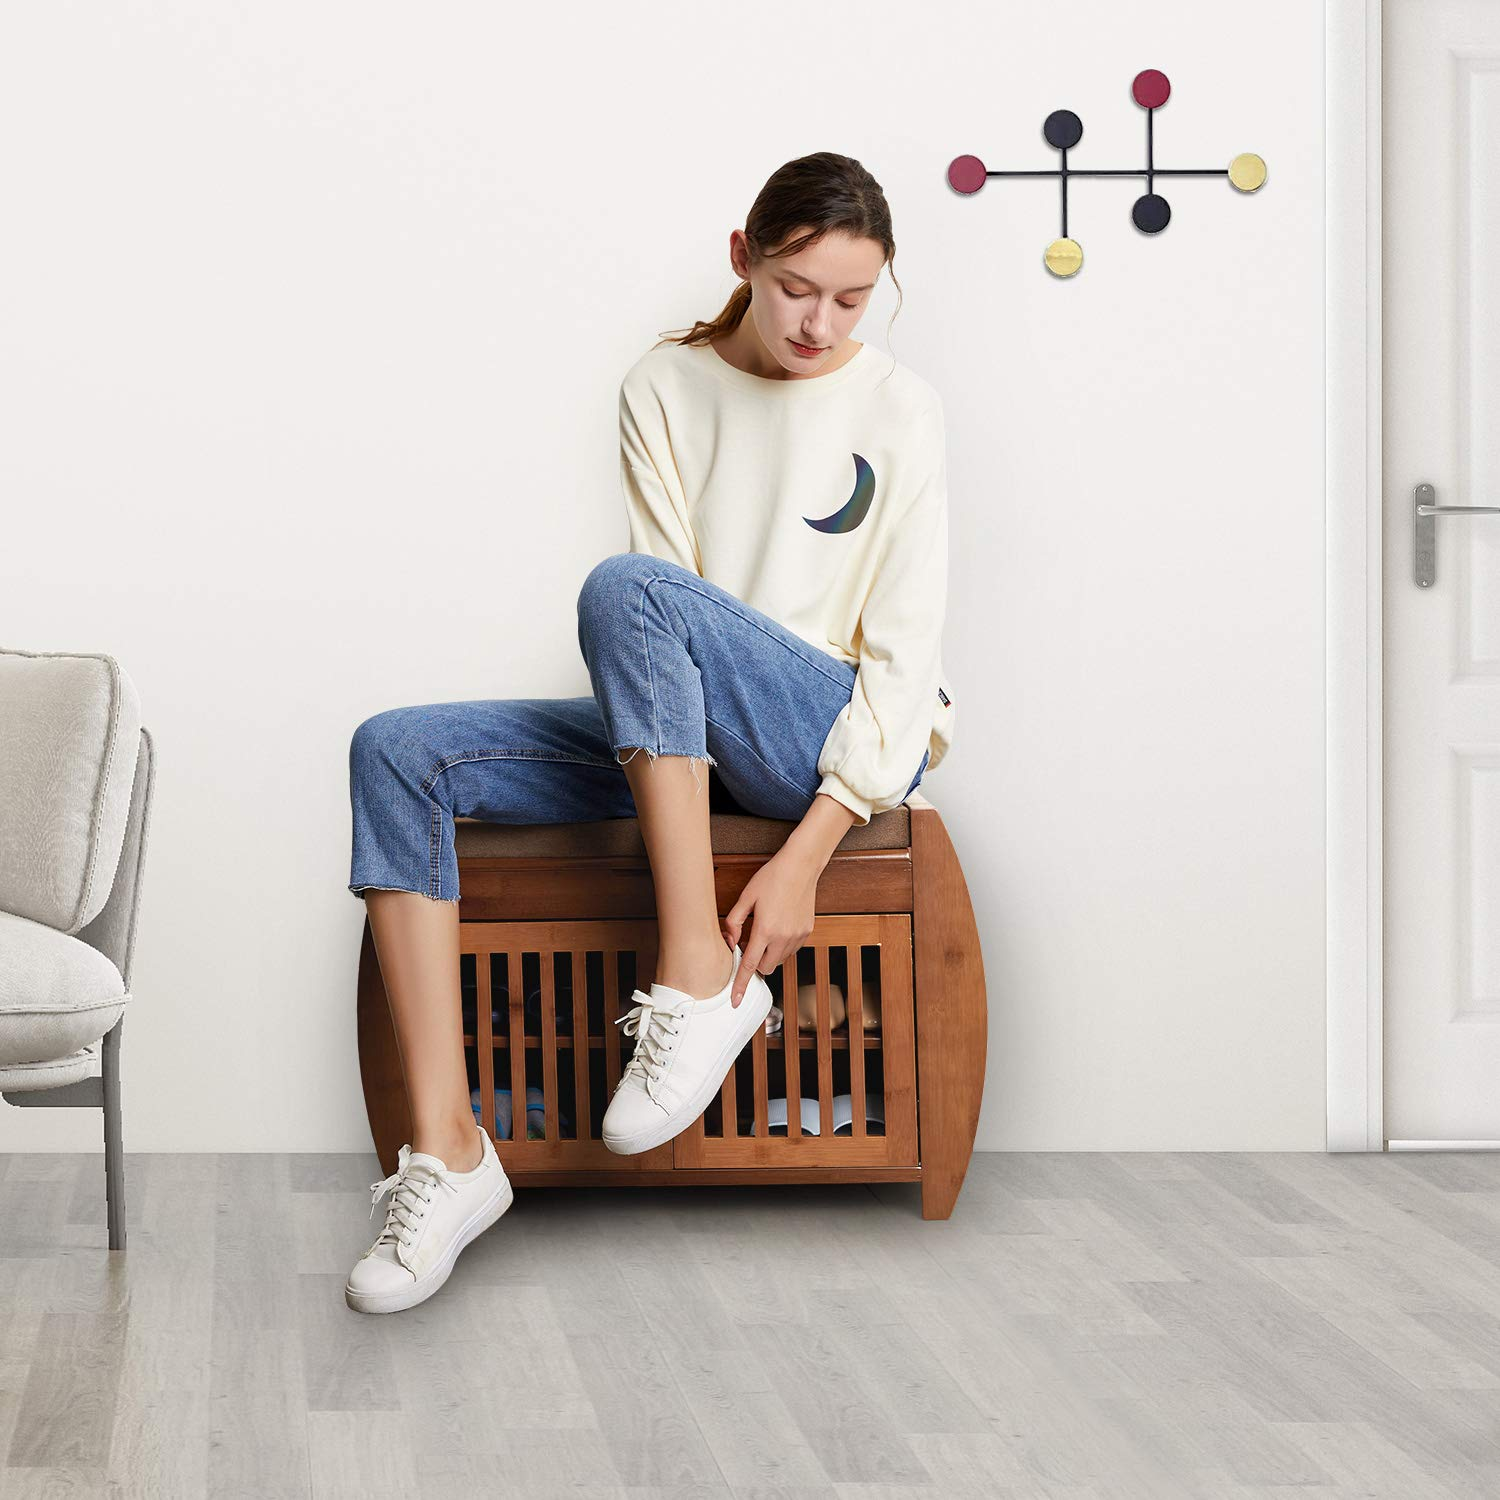 Bamboo Shoe rack & Bench with Hidden compartment